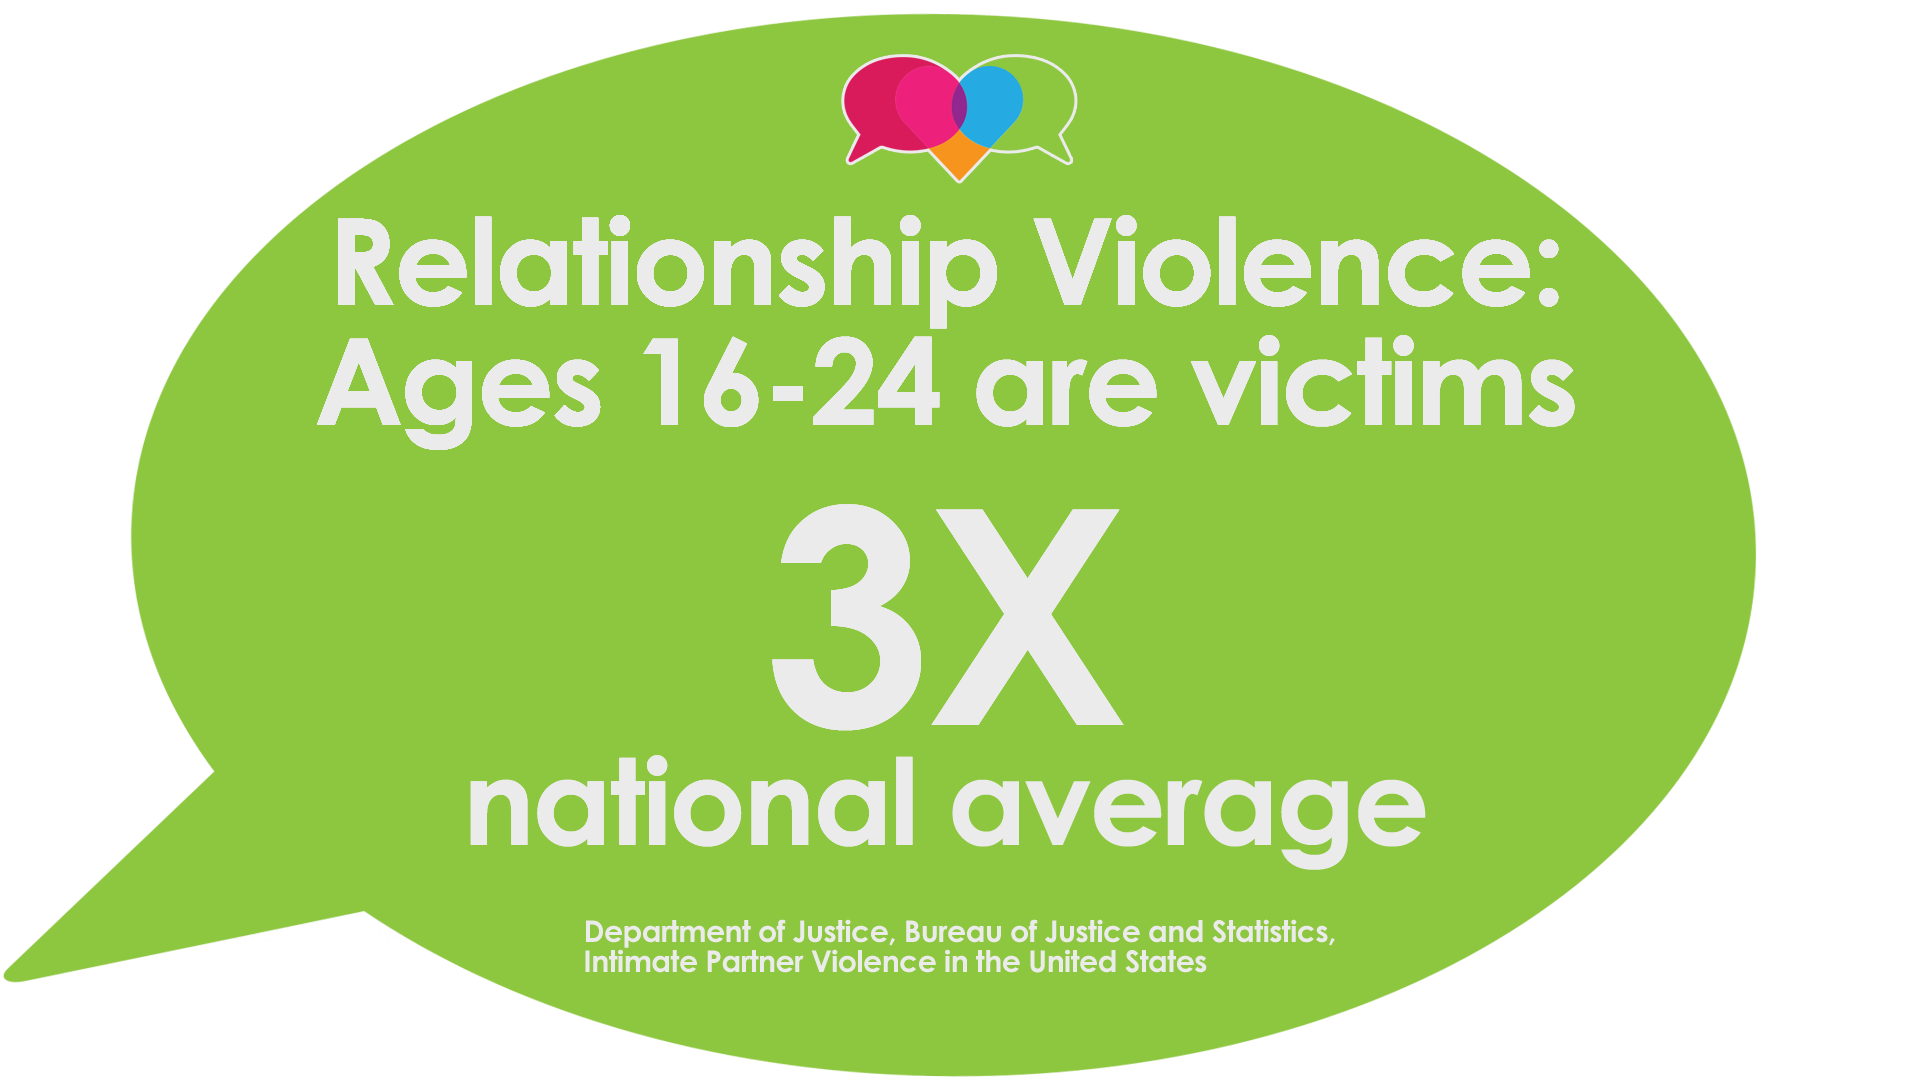 Relationship Violence: Ages 16-24 are victims 3 times the national average